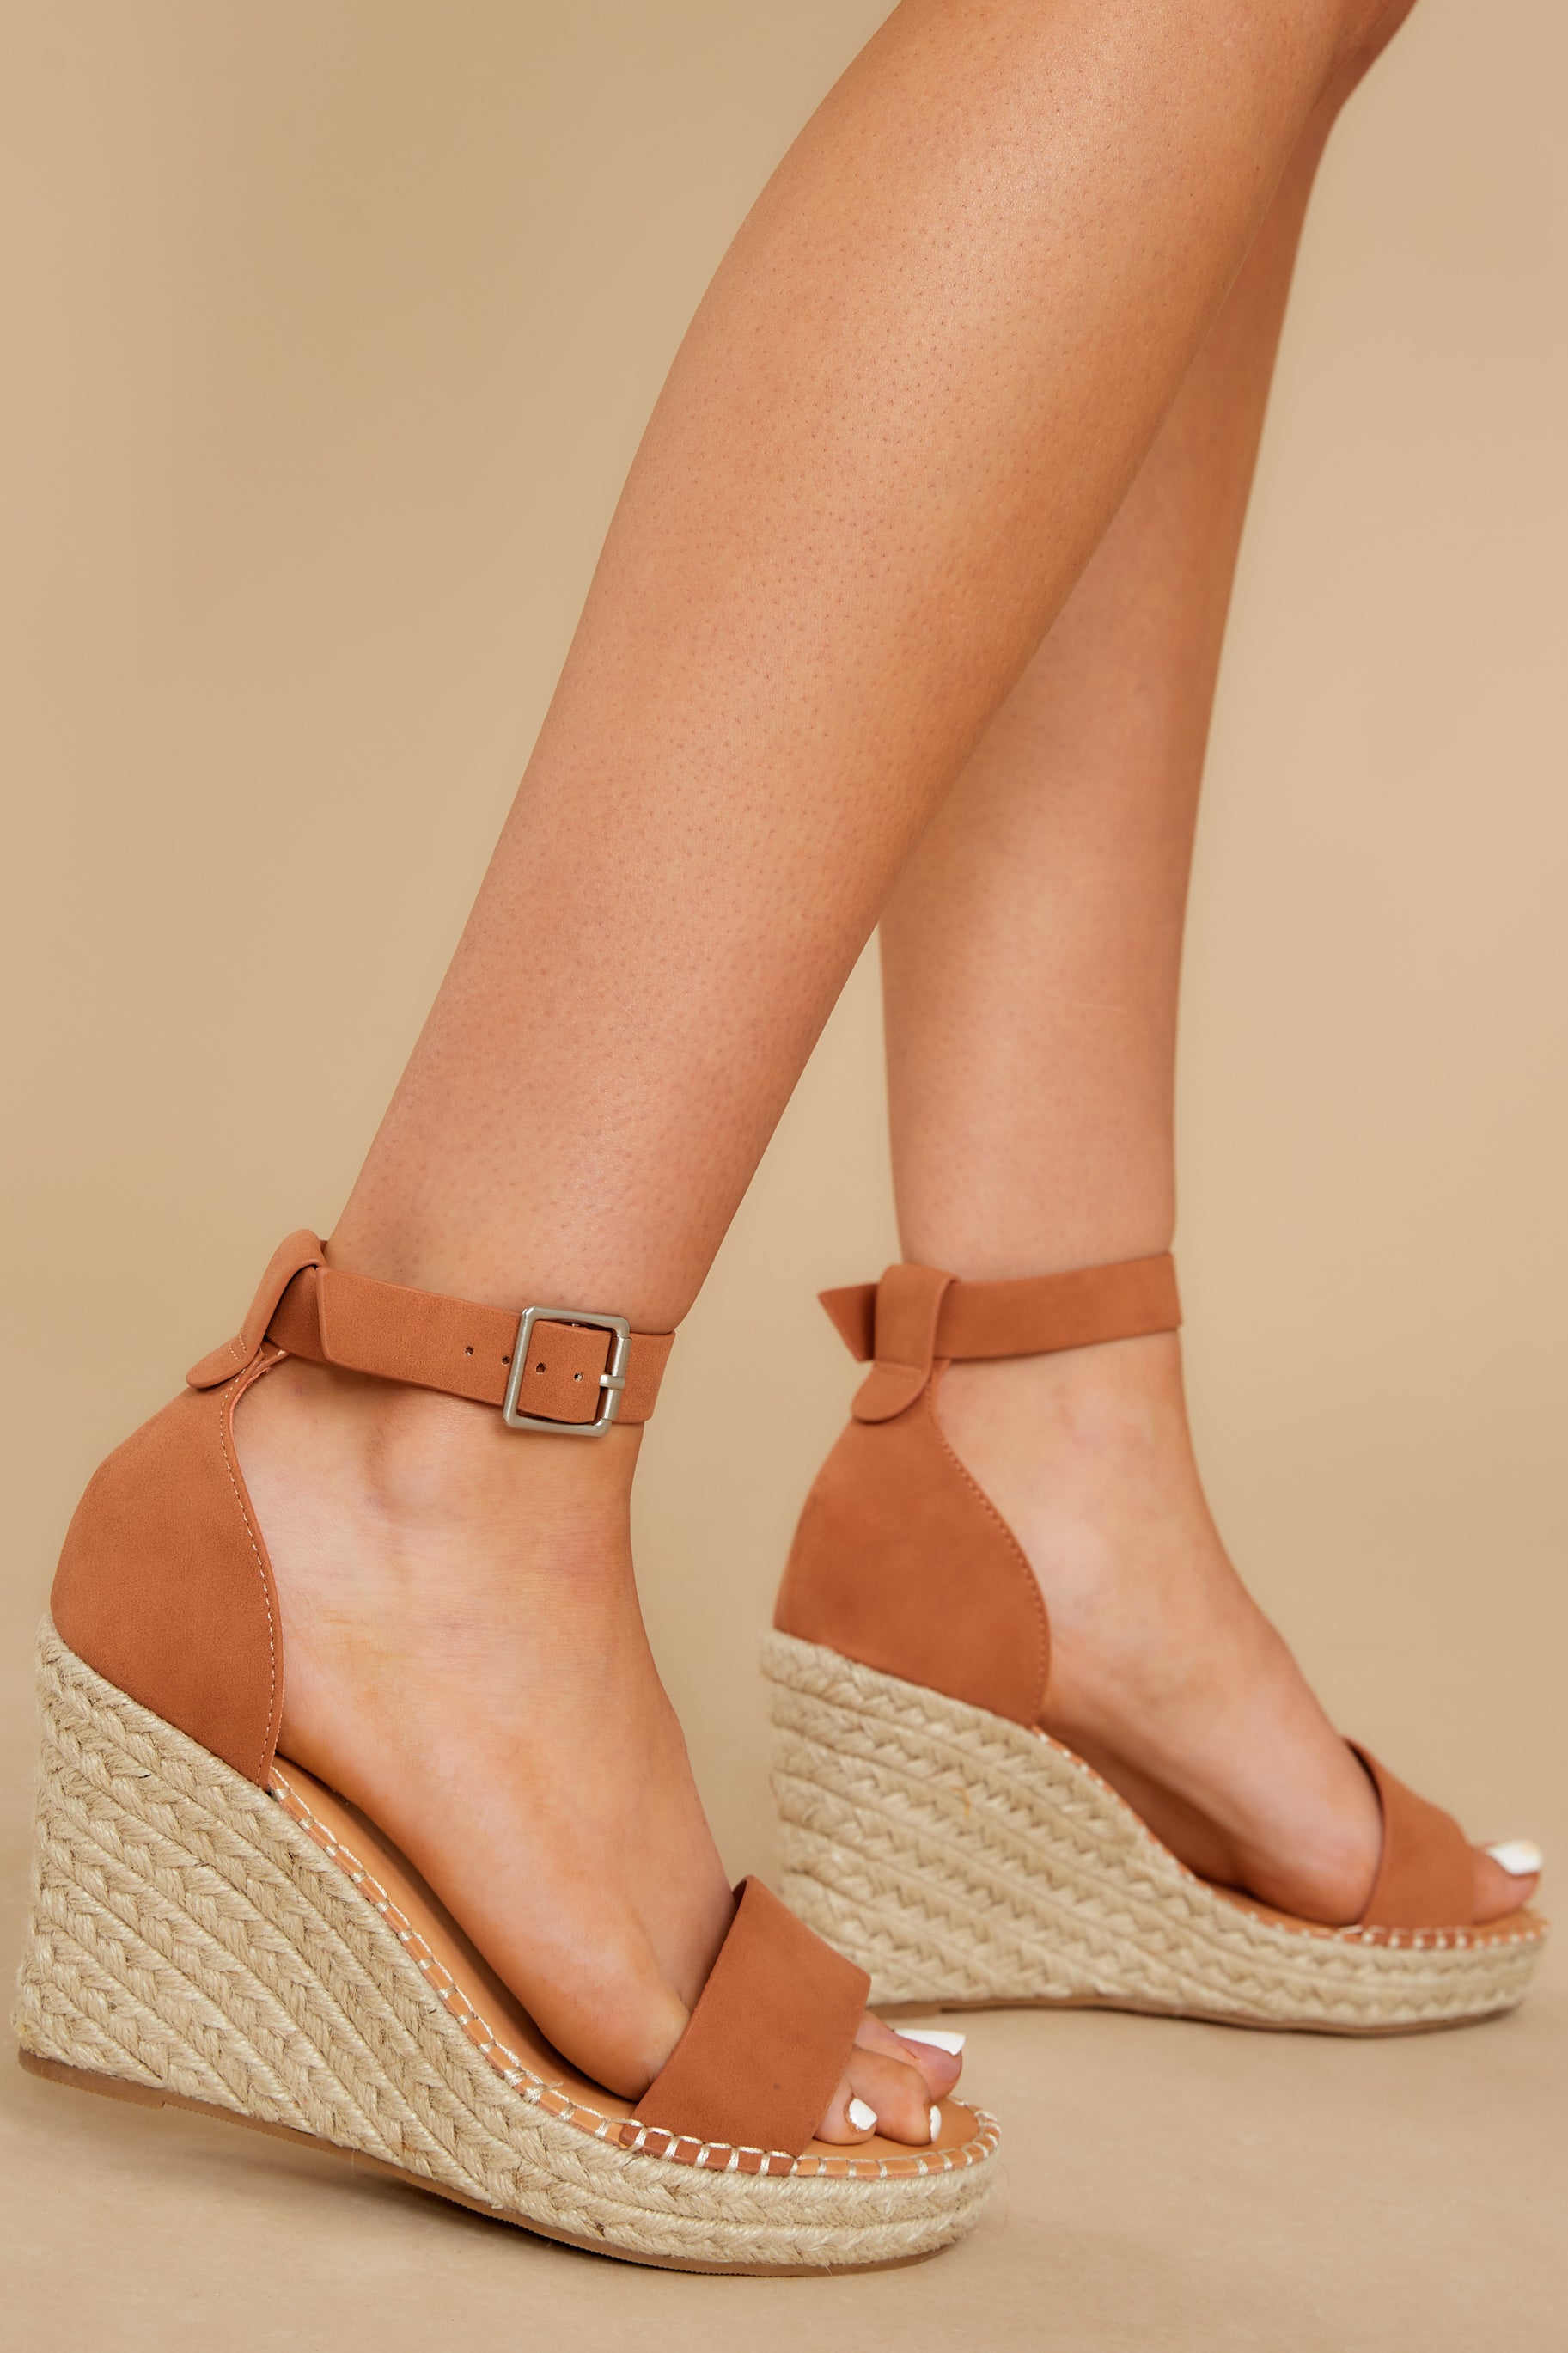 2 Note To Self Clay Platform Wedges @ reddress.com